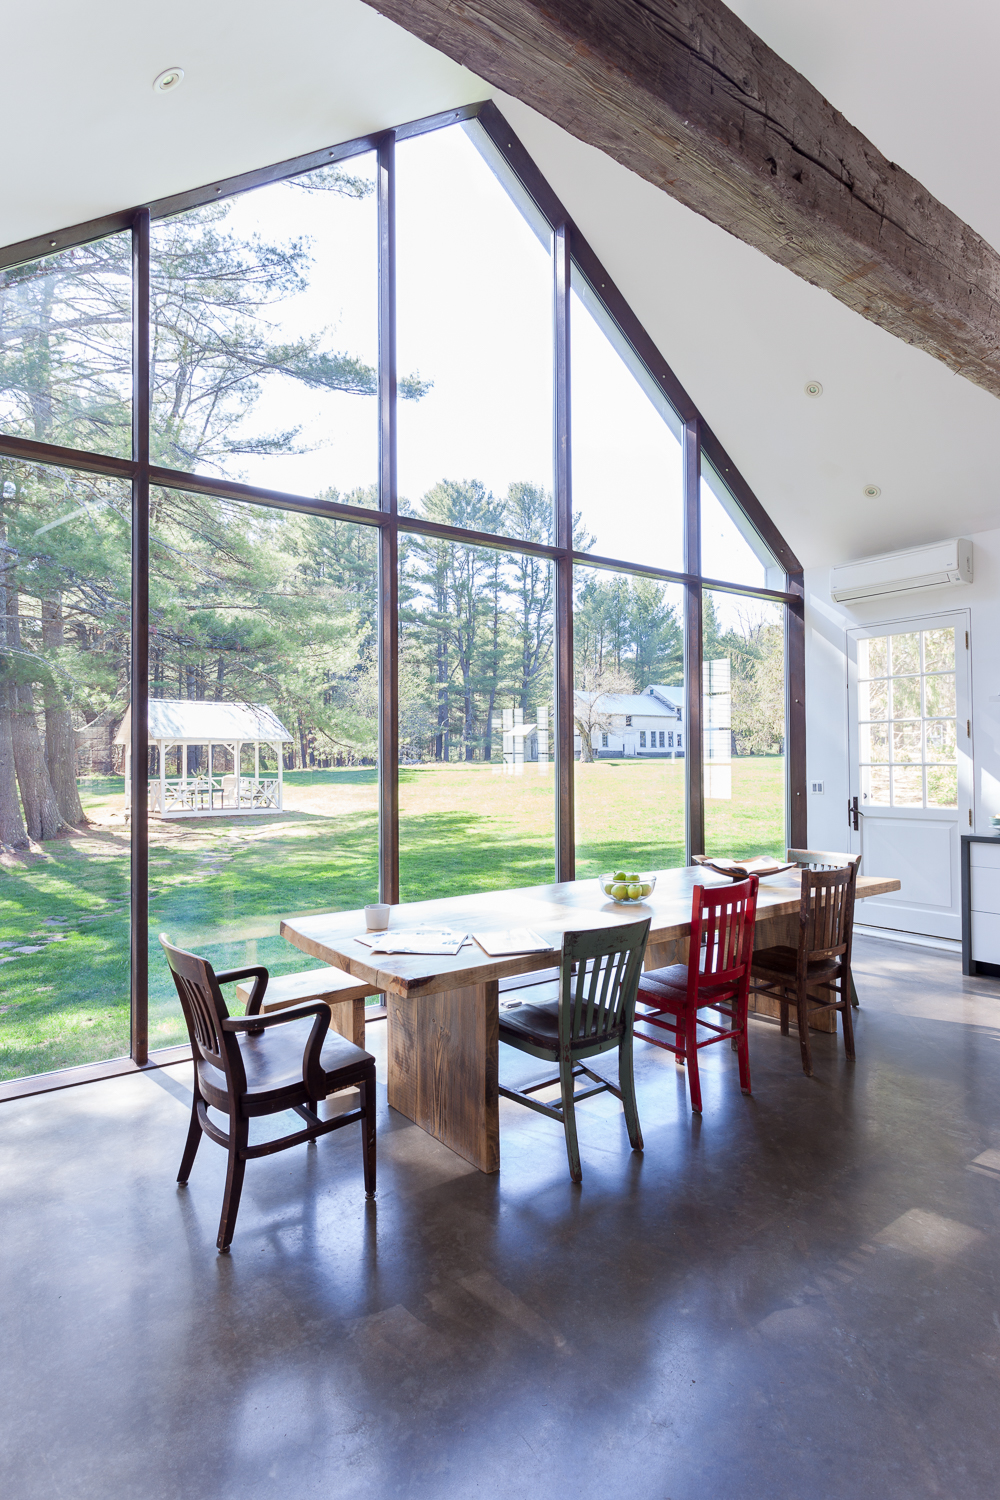 Kitchen glass wall overlooking water, apple trees and barn in the Floating Farmhouse Catskills vacation rental in upstate NY.